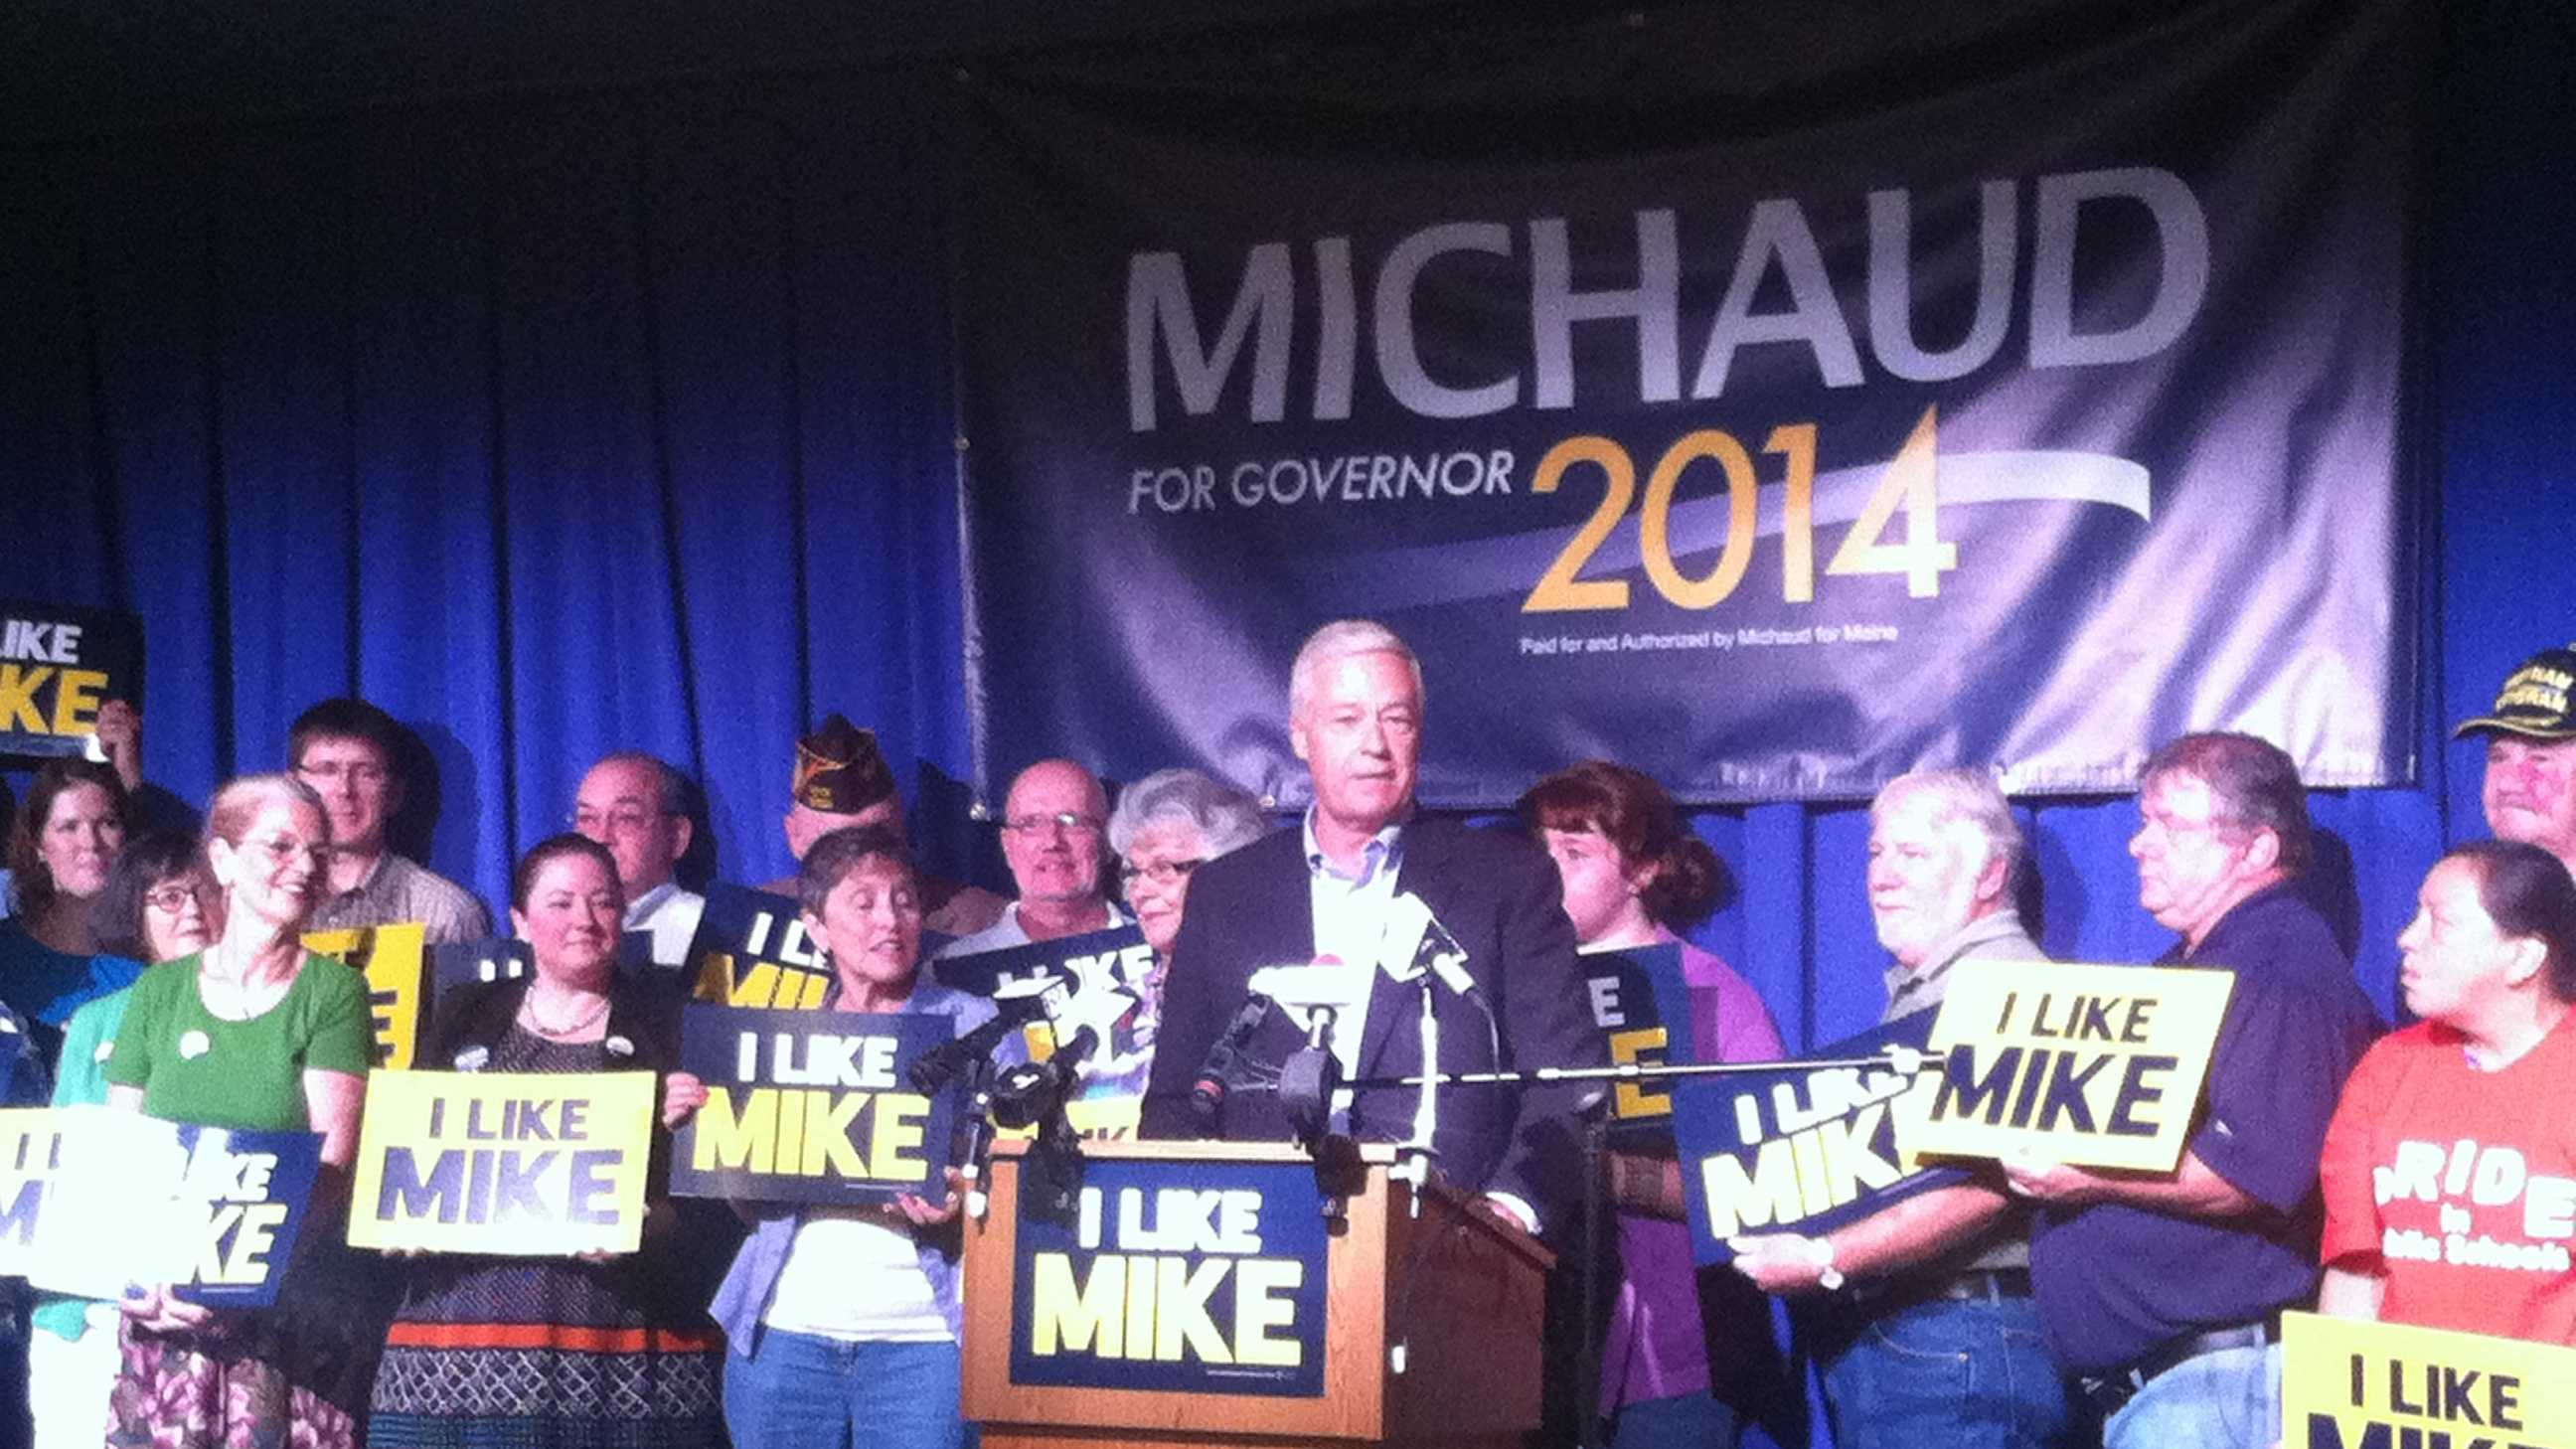 Mike Michaud announces gubernatorial run